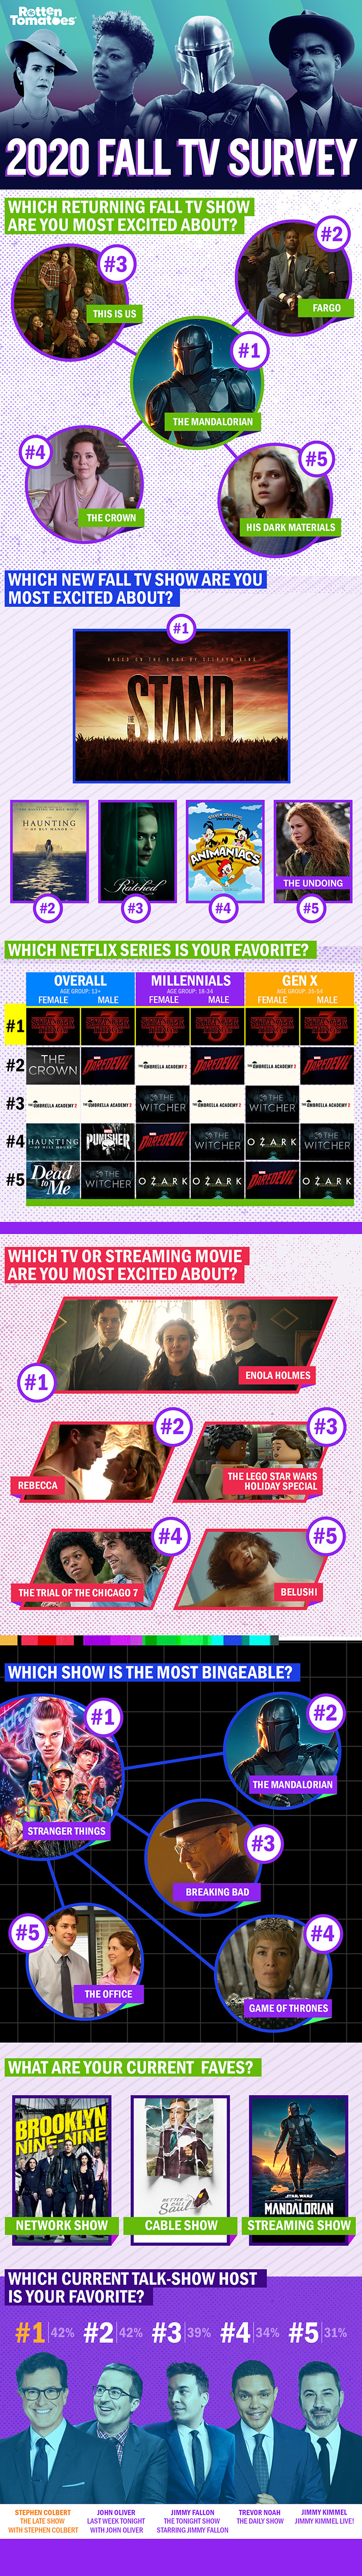 Rotten Tomatoes 2020 Fall TV Survey infographic